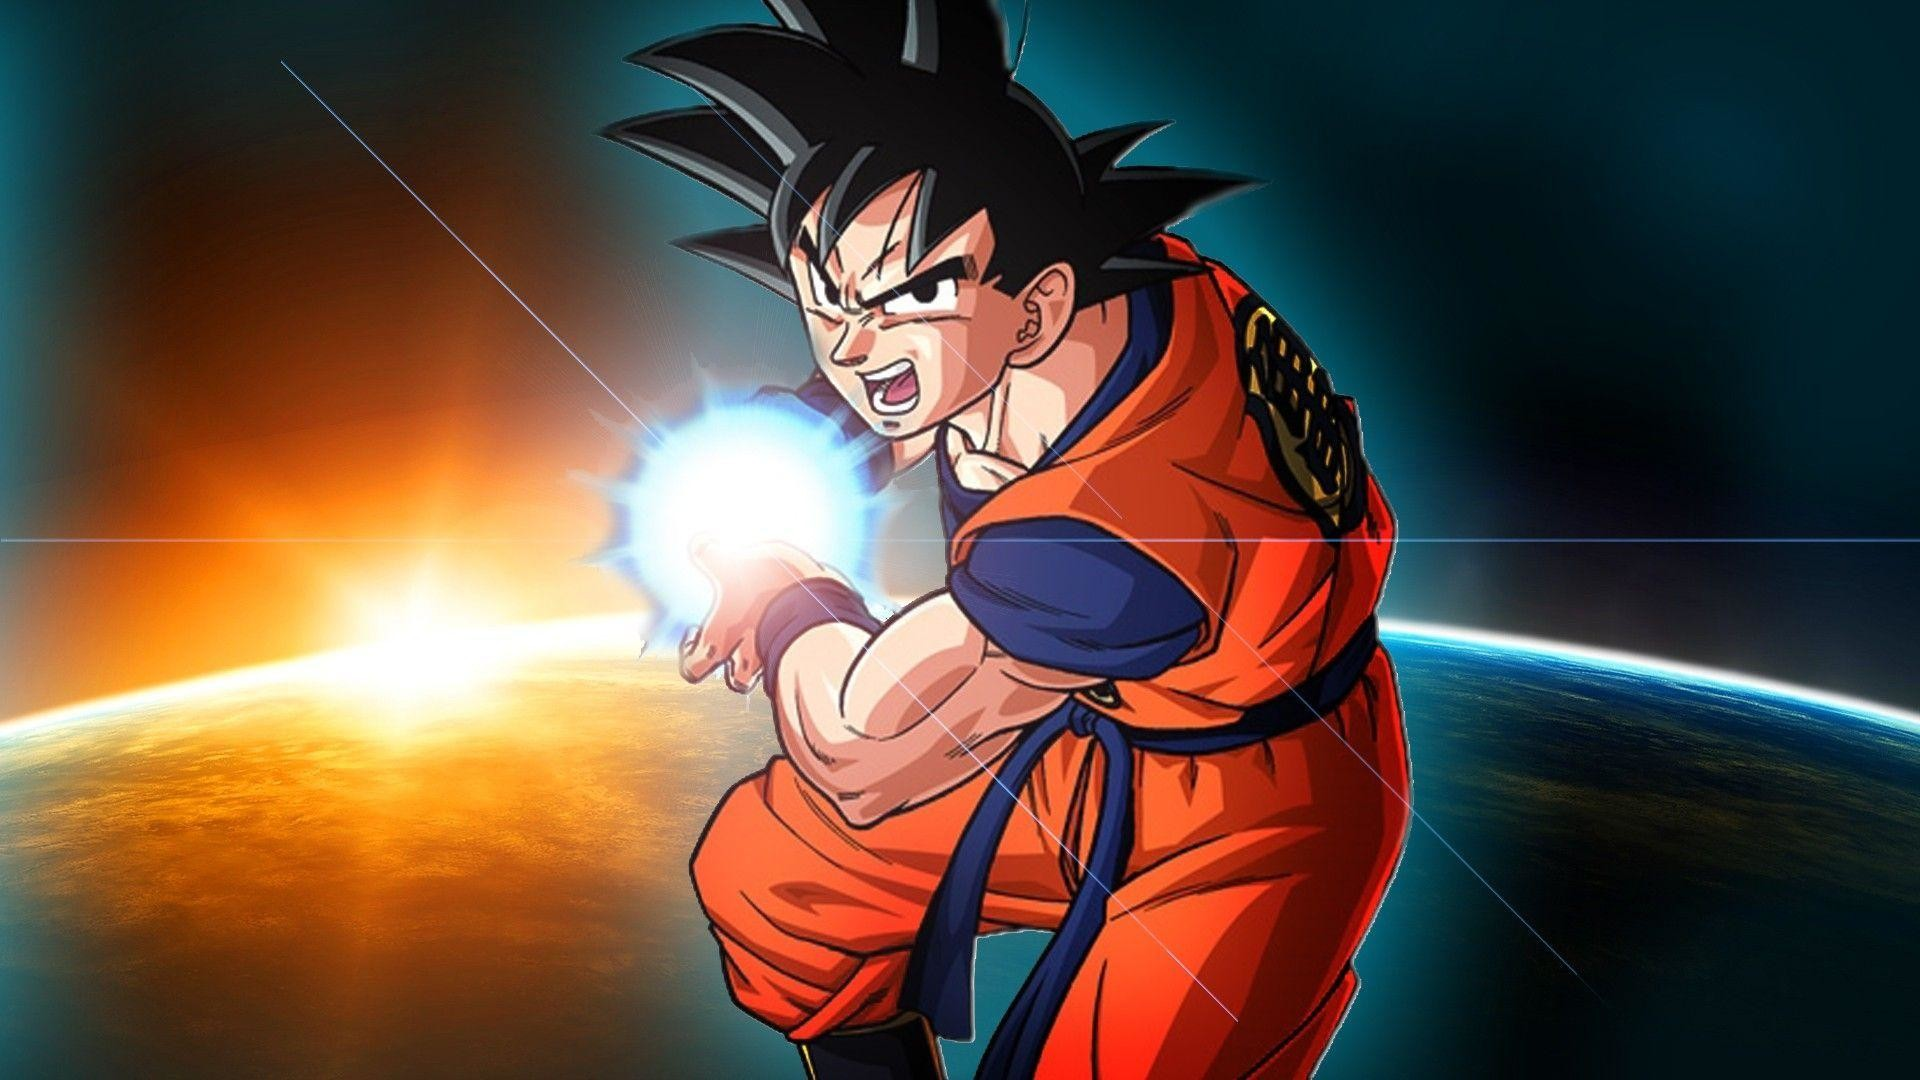 Dragon Ball Z Goku Wallpaper 72 Pictures